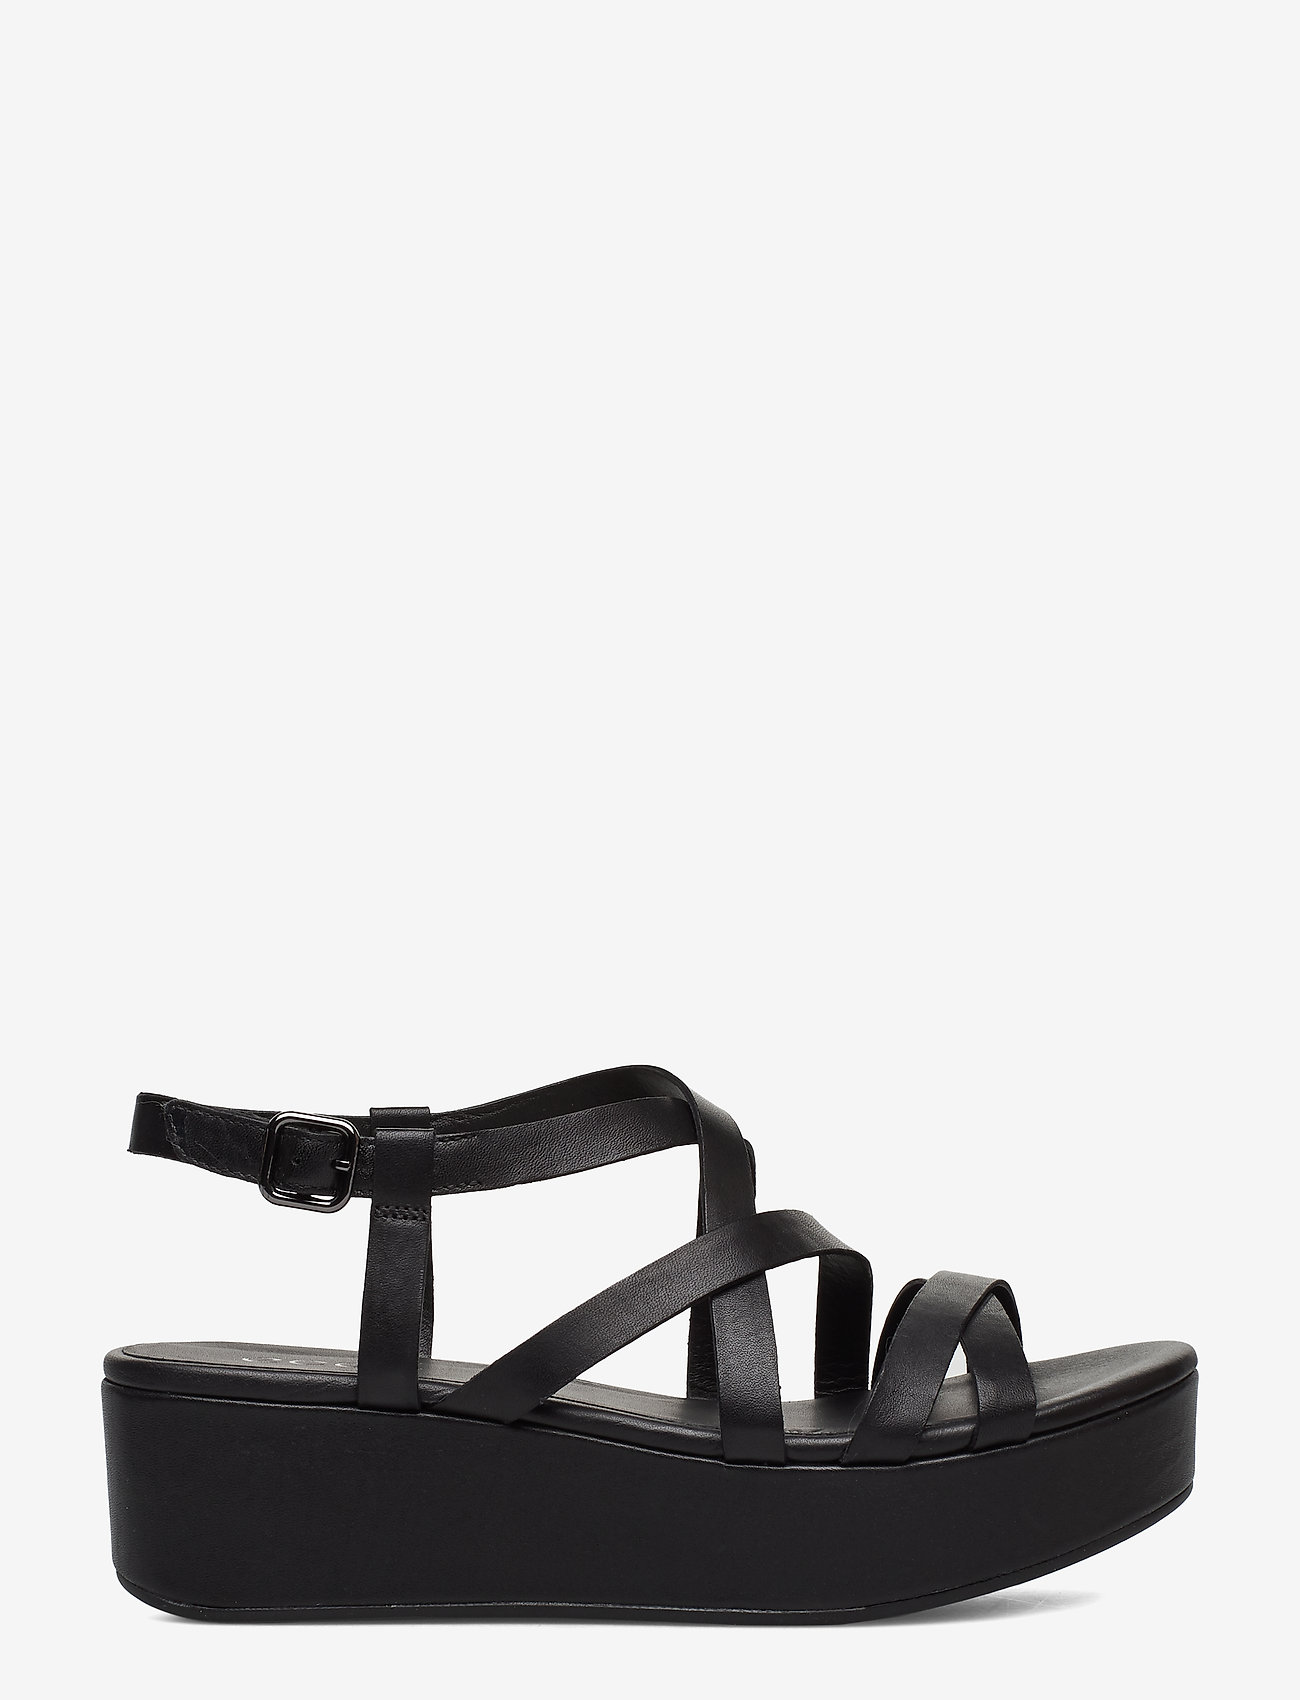 ECCO - ELEVATE PLATEAU SANDAL - flat sandals - black - 1